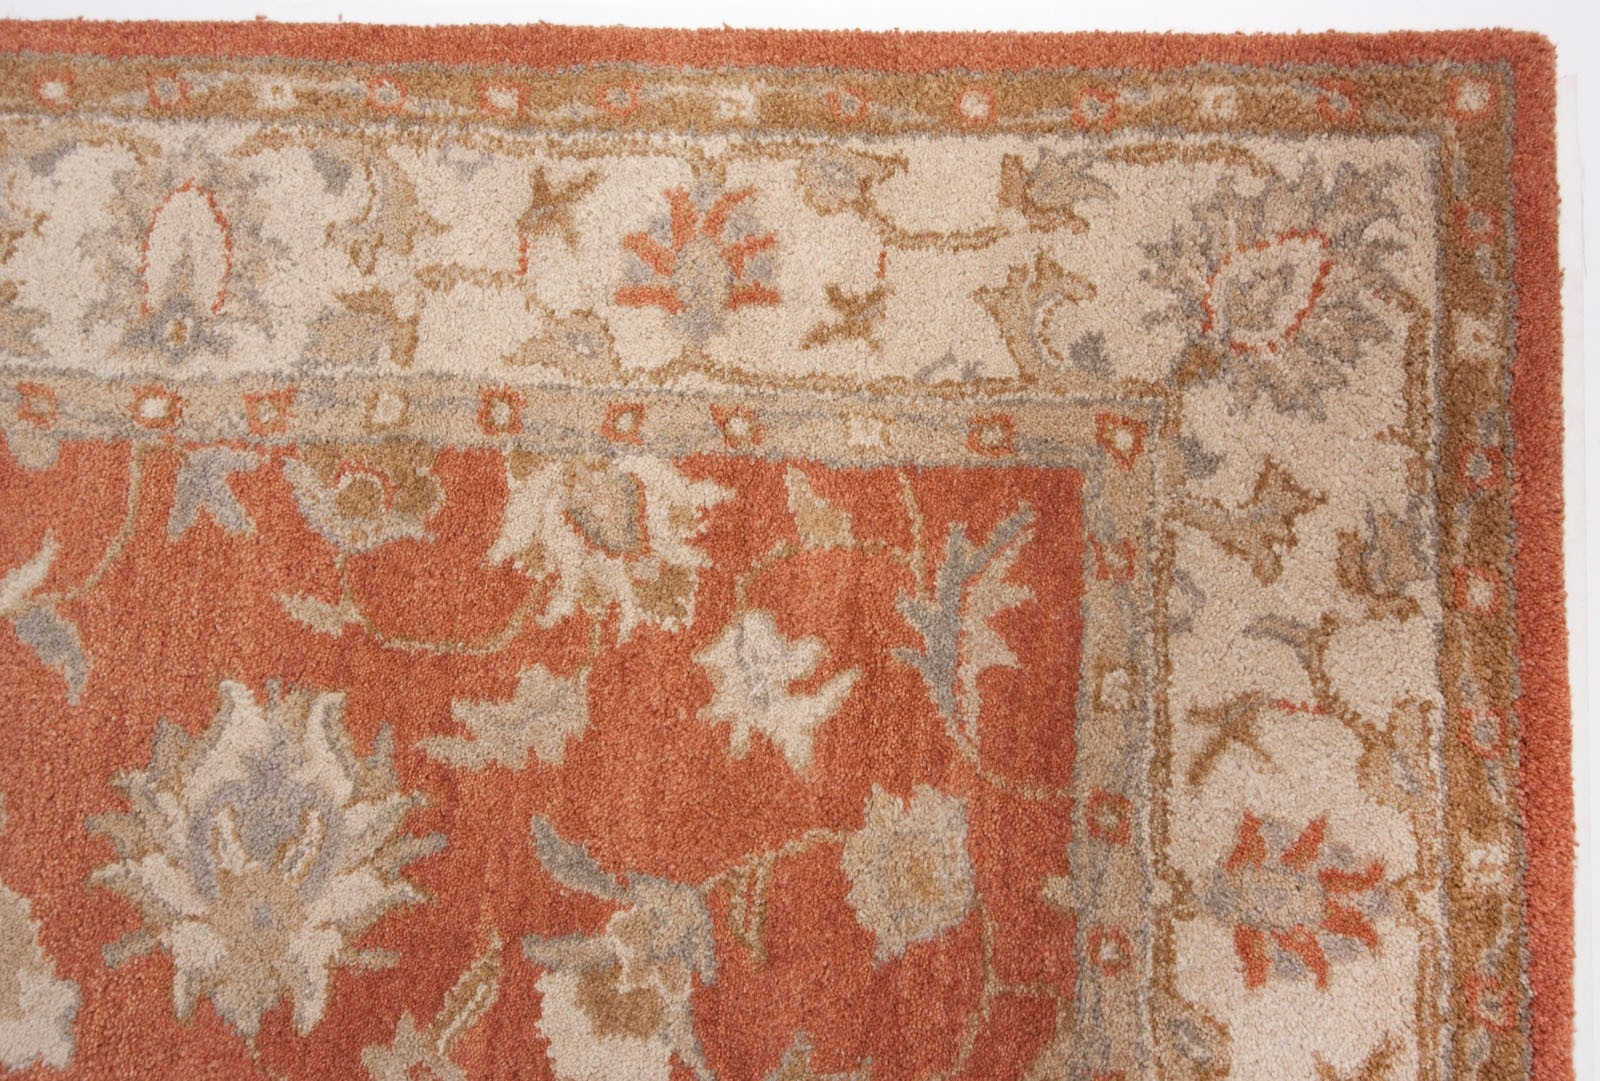 Rug Orange Area Rug 810 Wuqiangco In Orange Floor Rugs (Image 10 of 15)